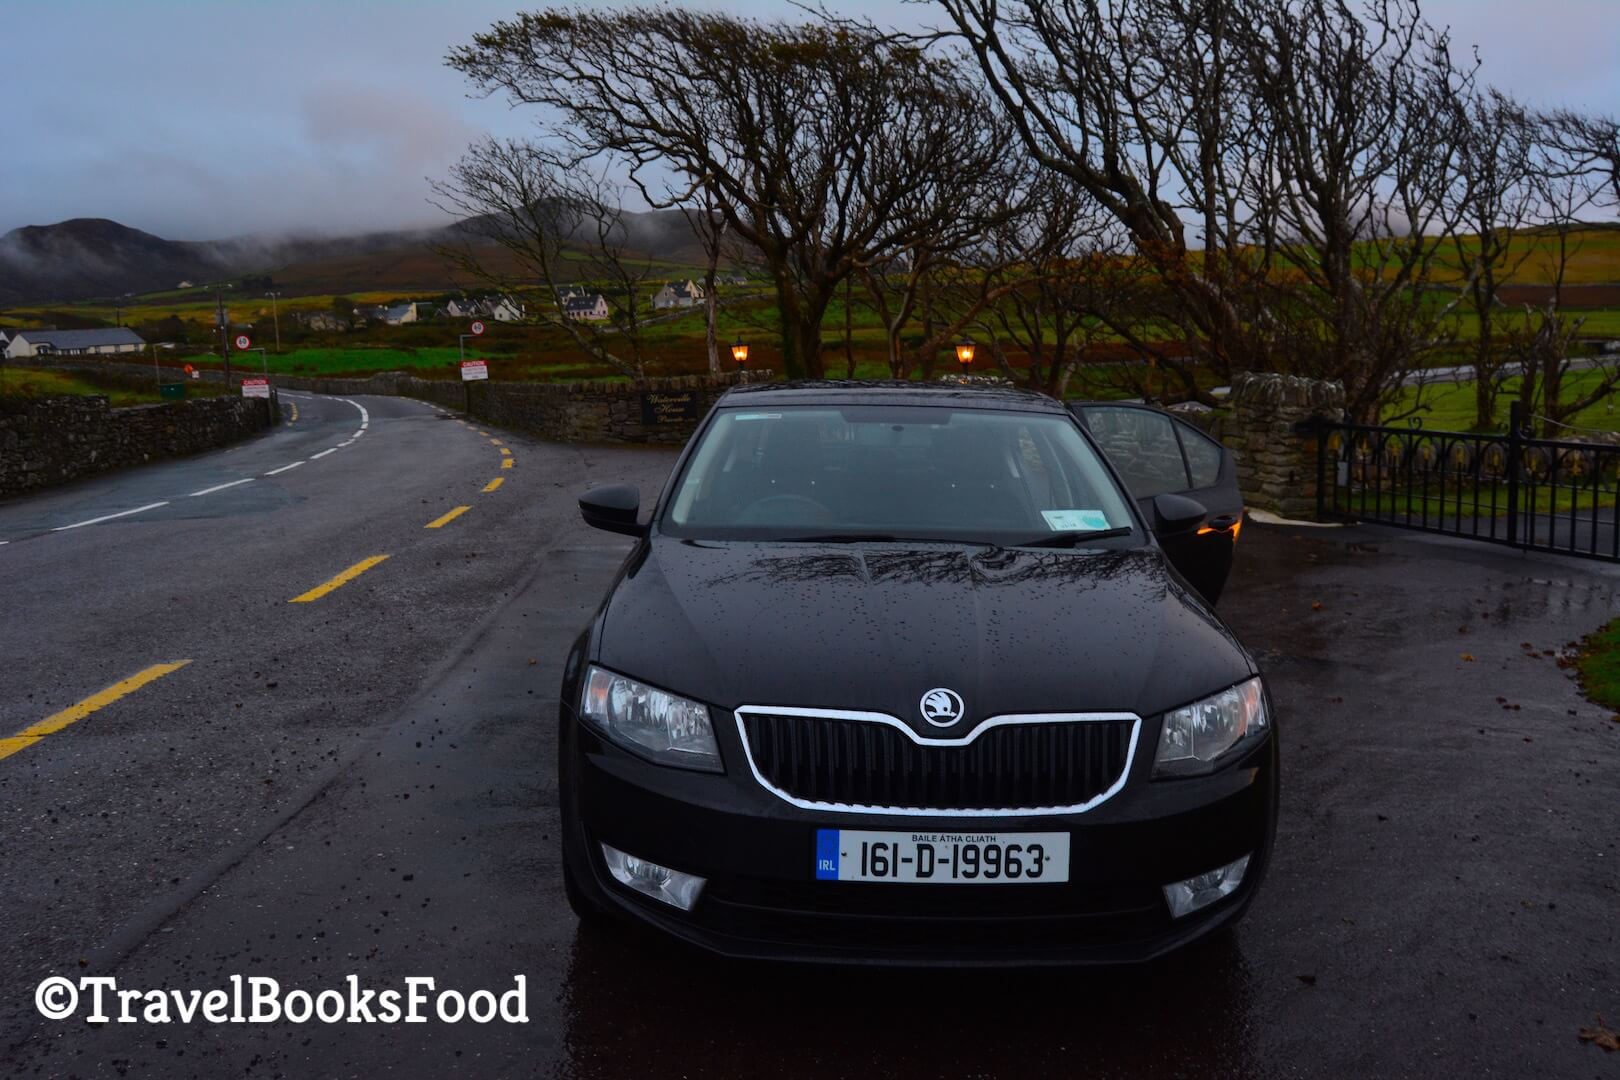 Photo of our Skoda Saloon car we drove around Ireland with a gorgeous eerie background